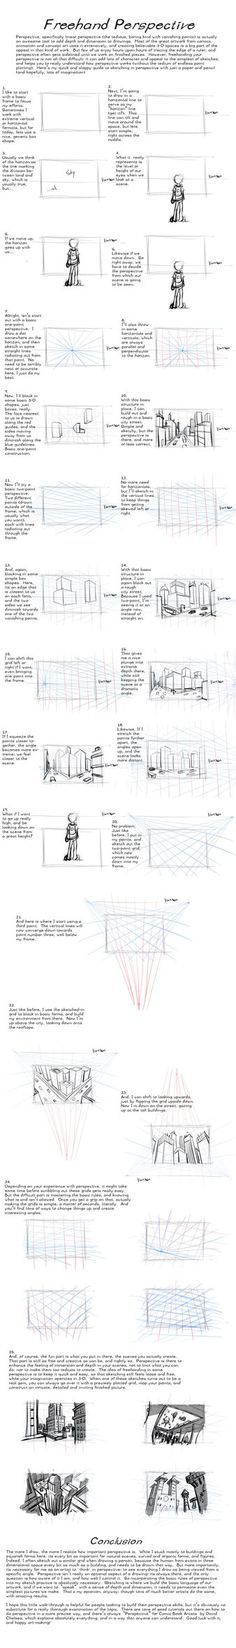 Freehand Perspective Drawing Tutorial by *AdamMasterman on deviantART